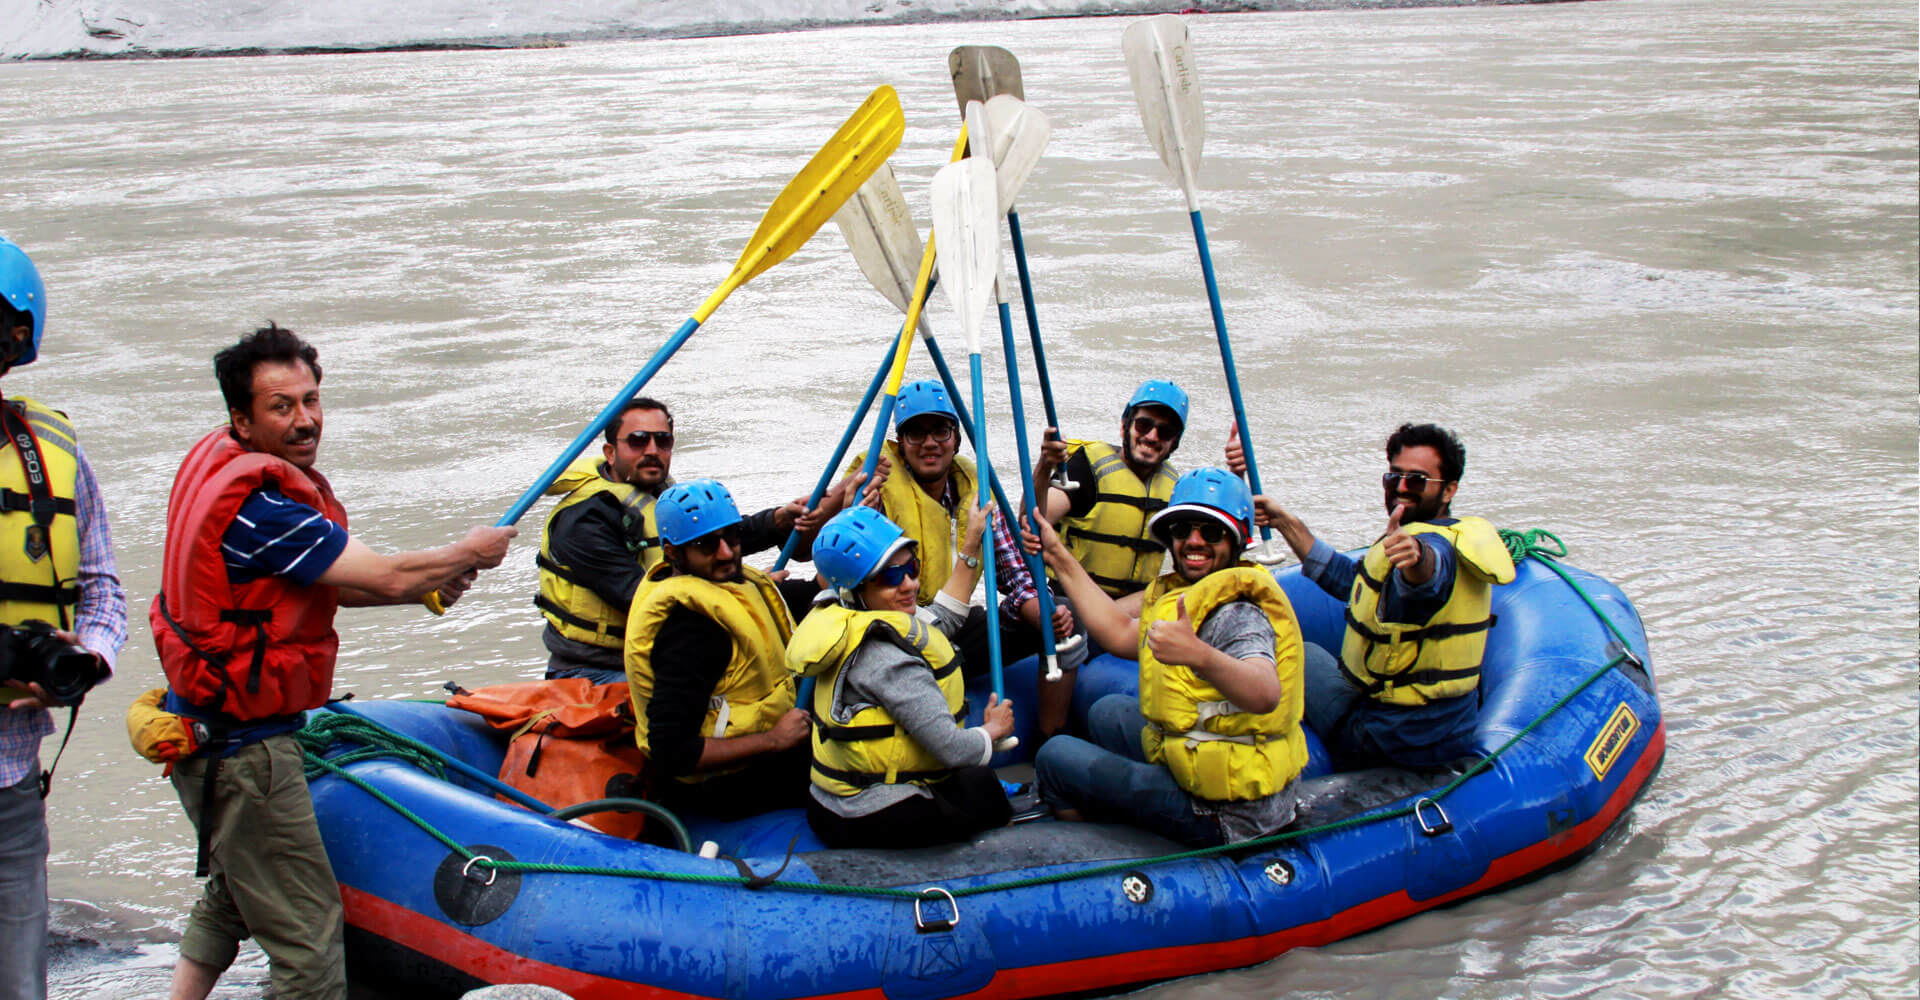 Rafting Adventure - A Different Agenda